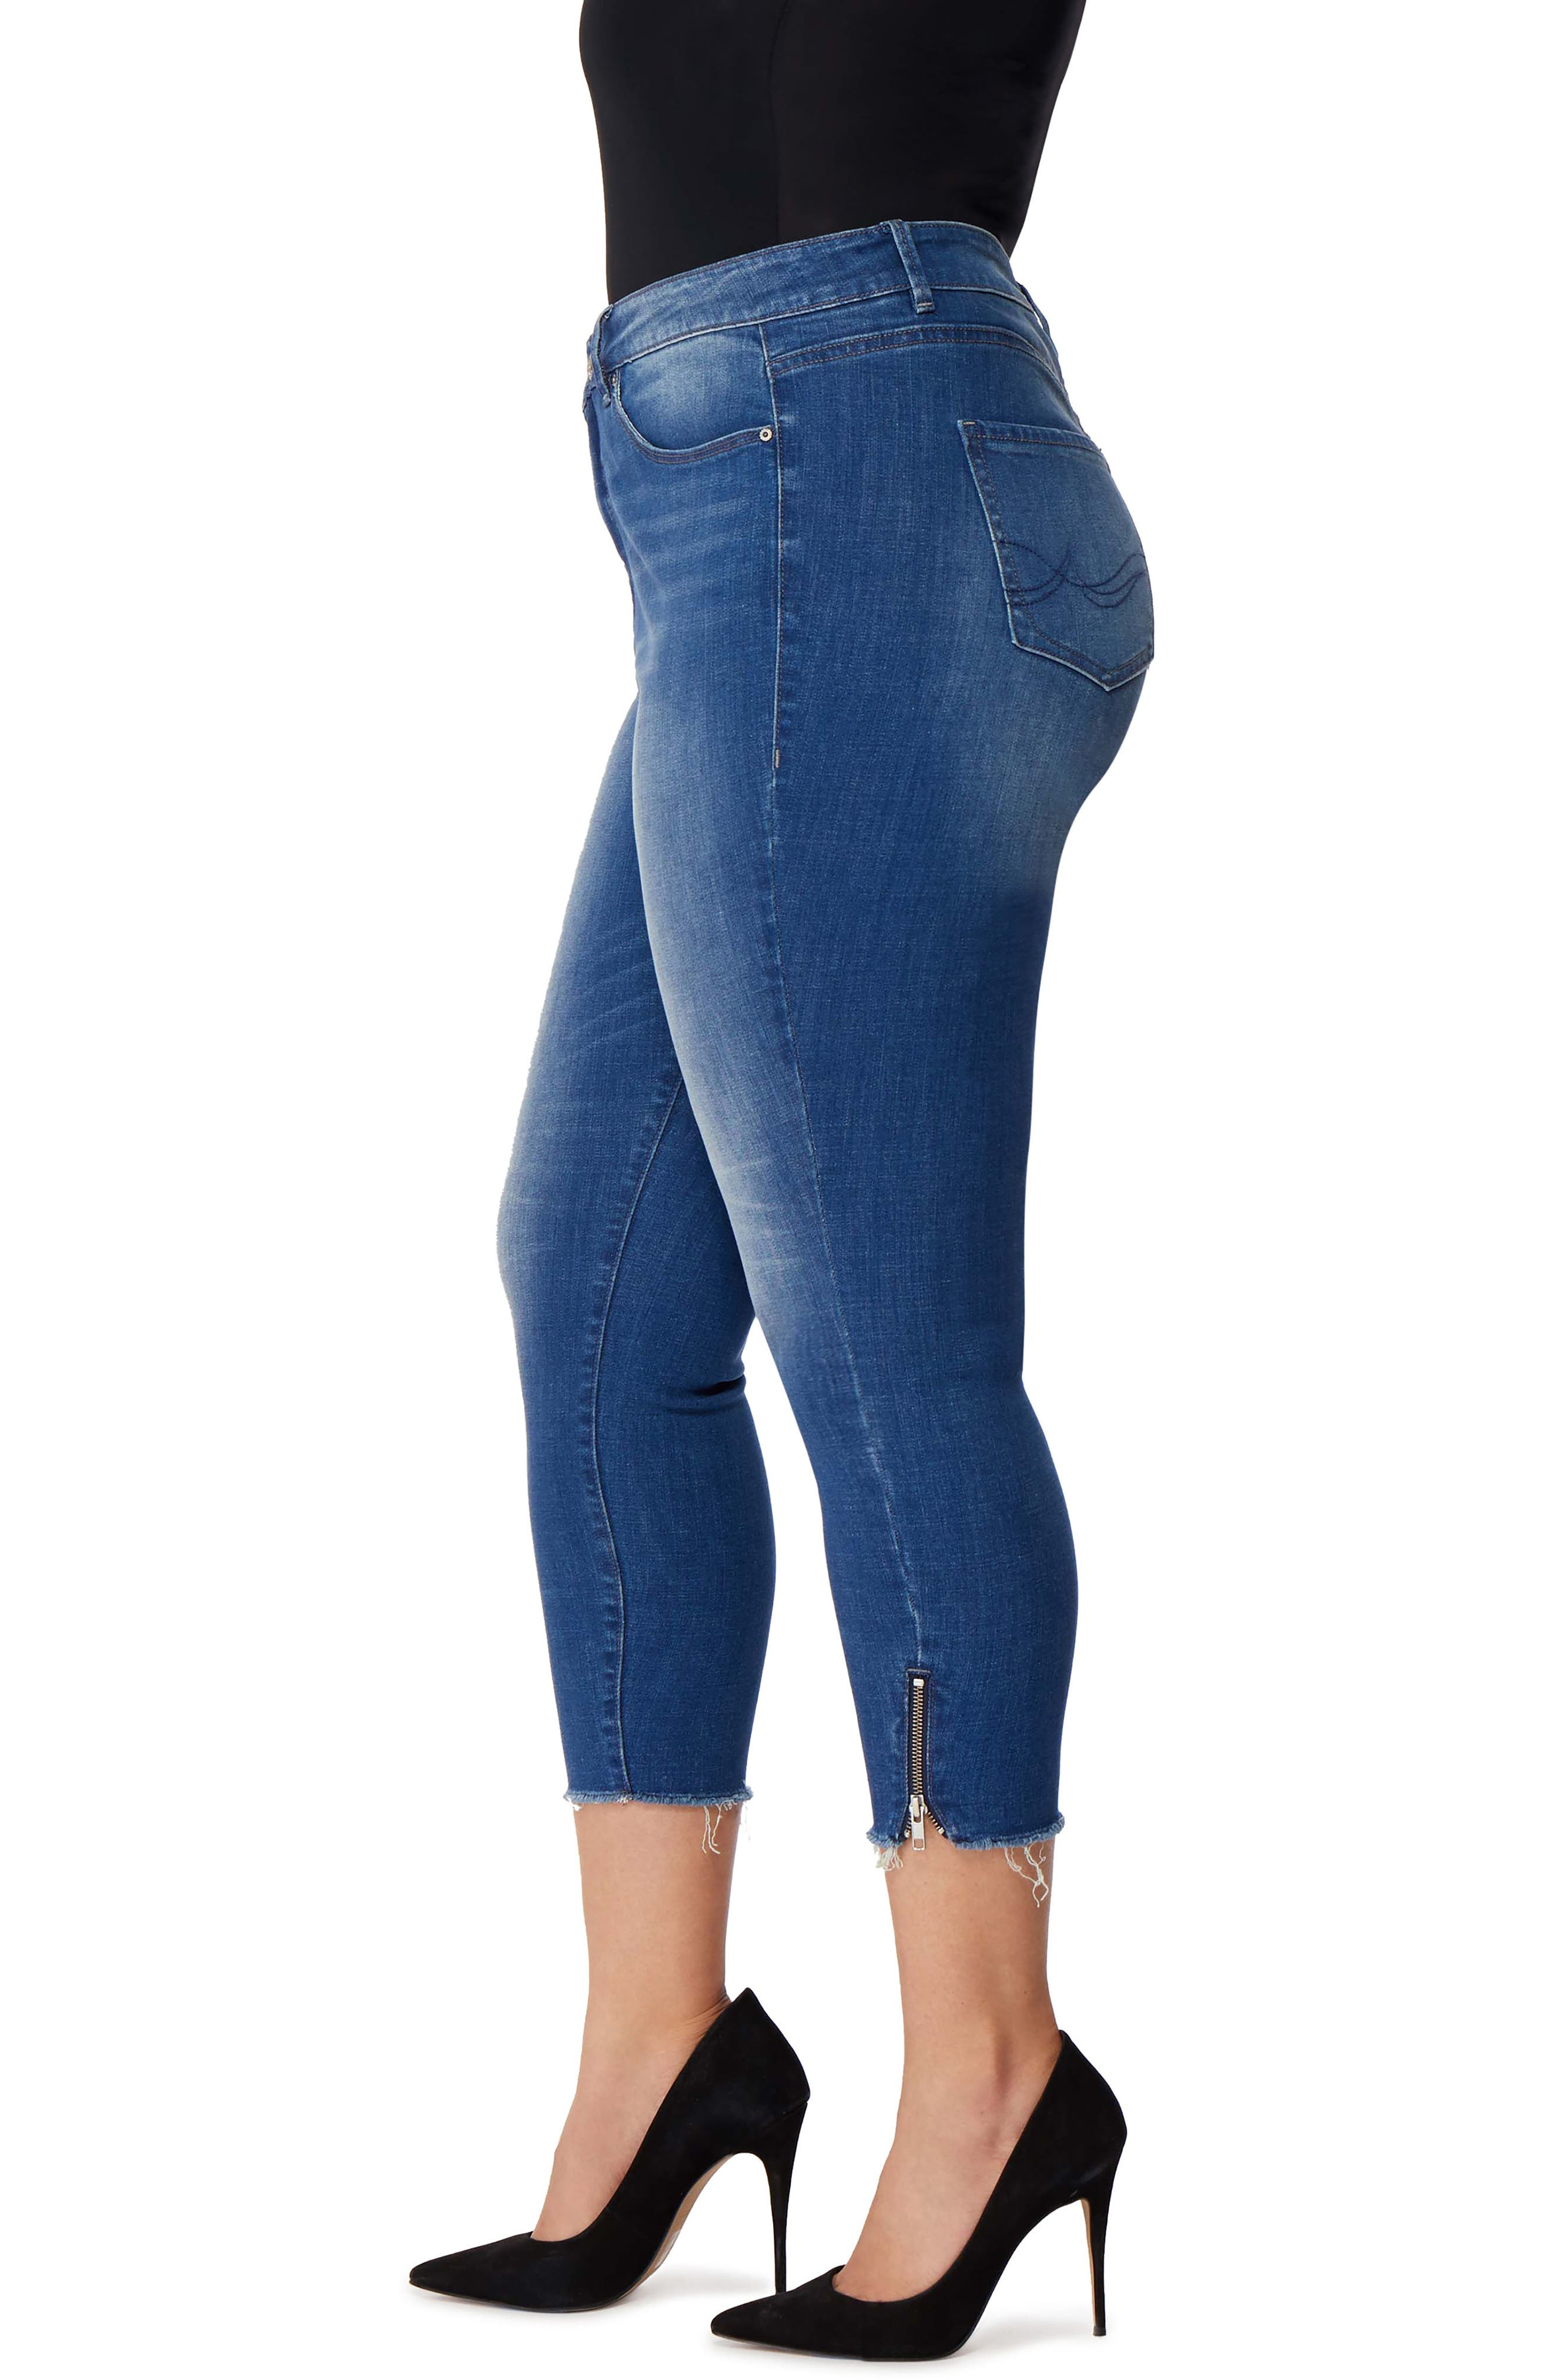 Icon Crop High Waist Skinny Jeans,                             Alternate thumbnail 3, color,                             453